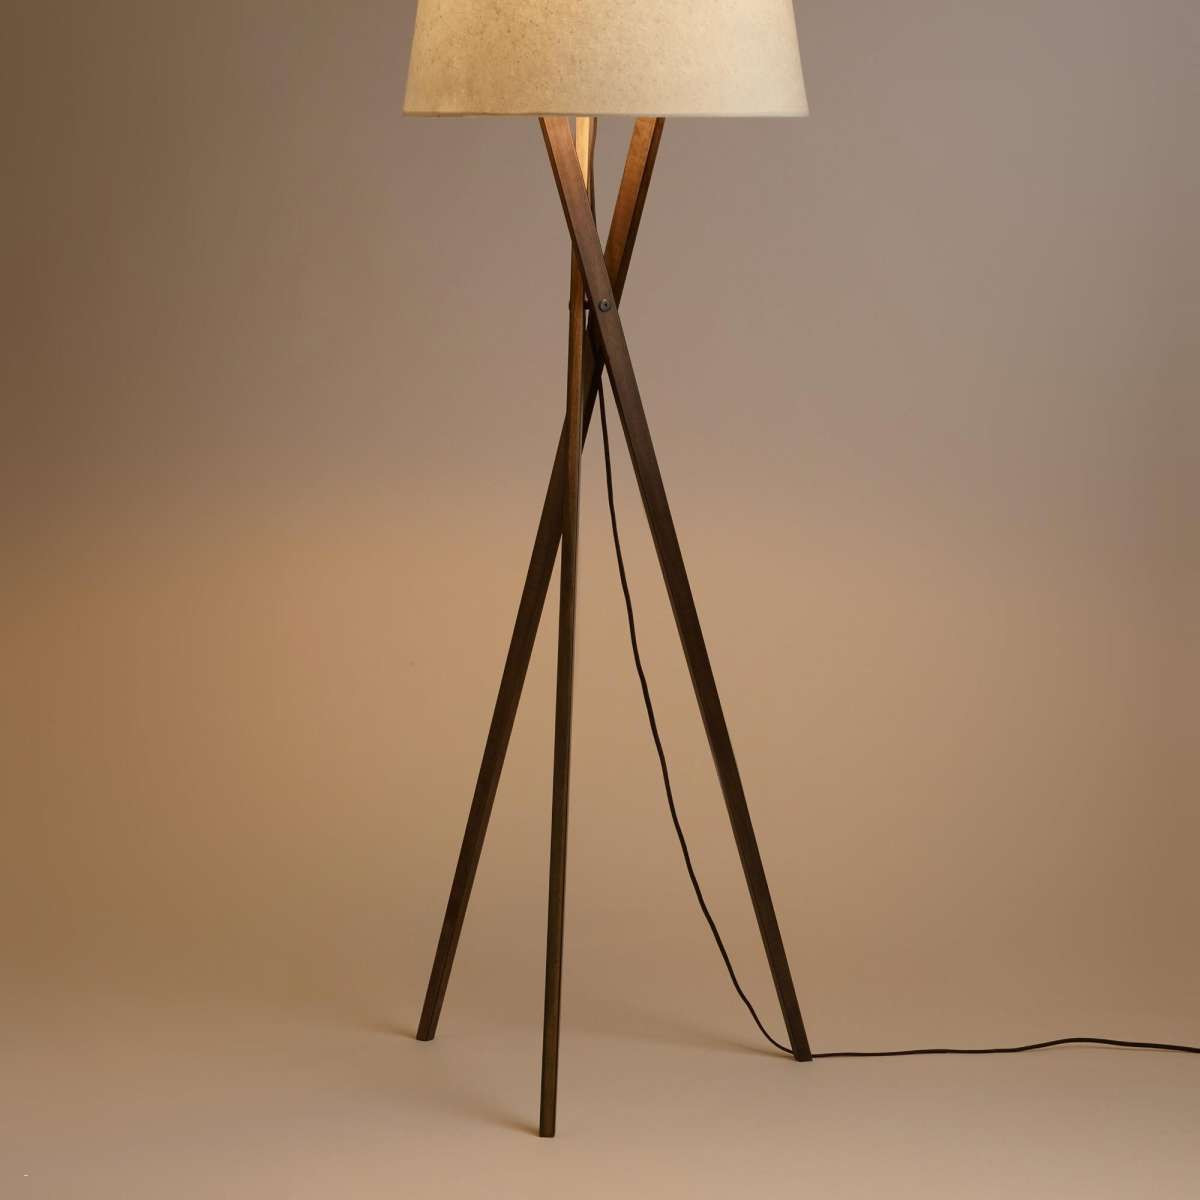 distressed floor vase of wooden floor lamp to floor lamps adesso floor lamp astounding within wooden floor lamp before luxury wooden tripod lamp designsolutions usa